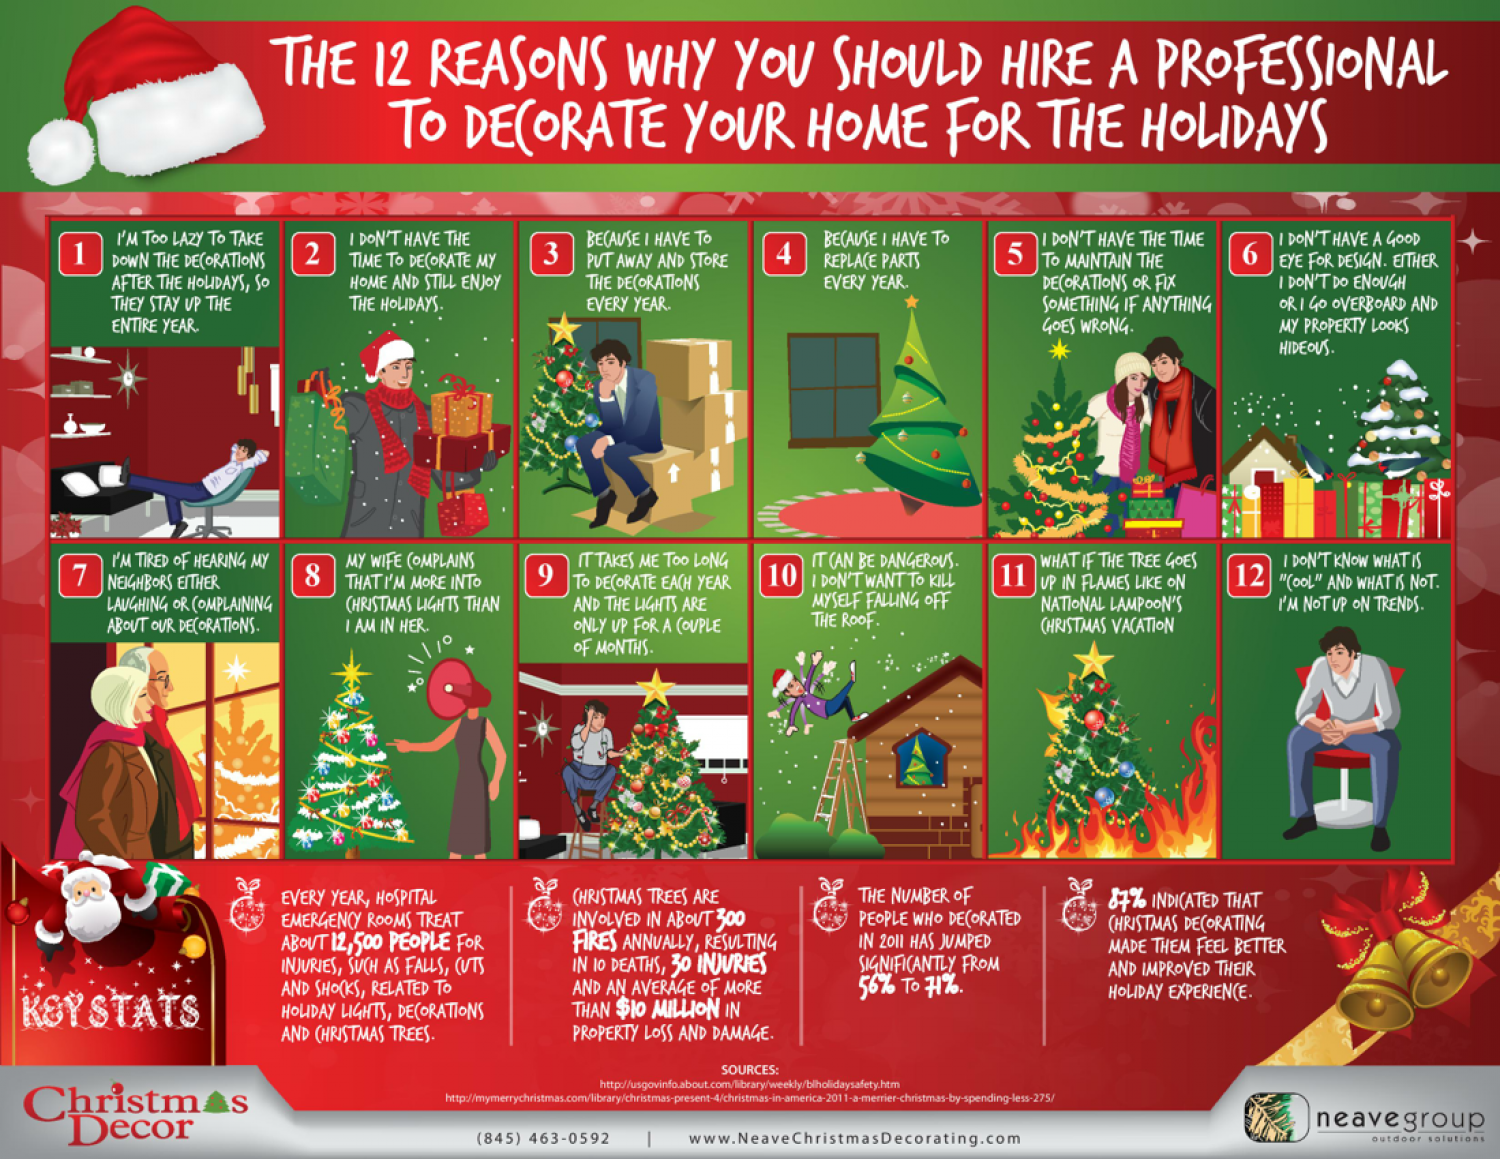 The 12 Reasons Why You Should Hire a Professional to Decorate Your Home for the Holidays Infographic